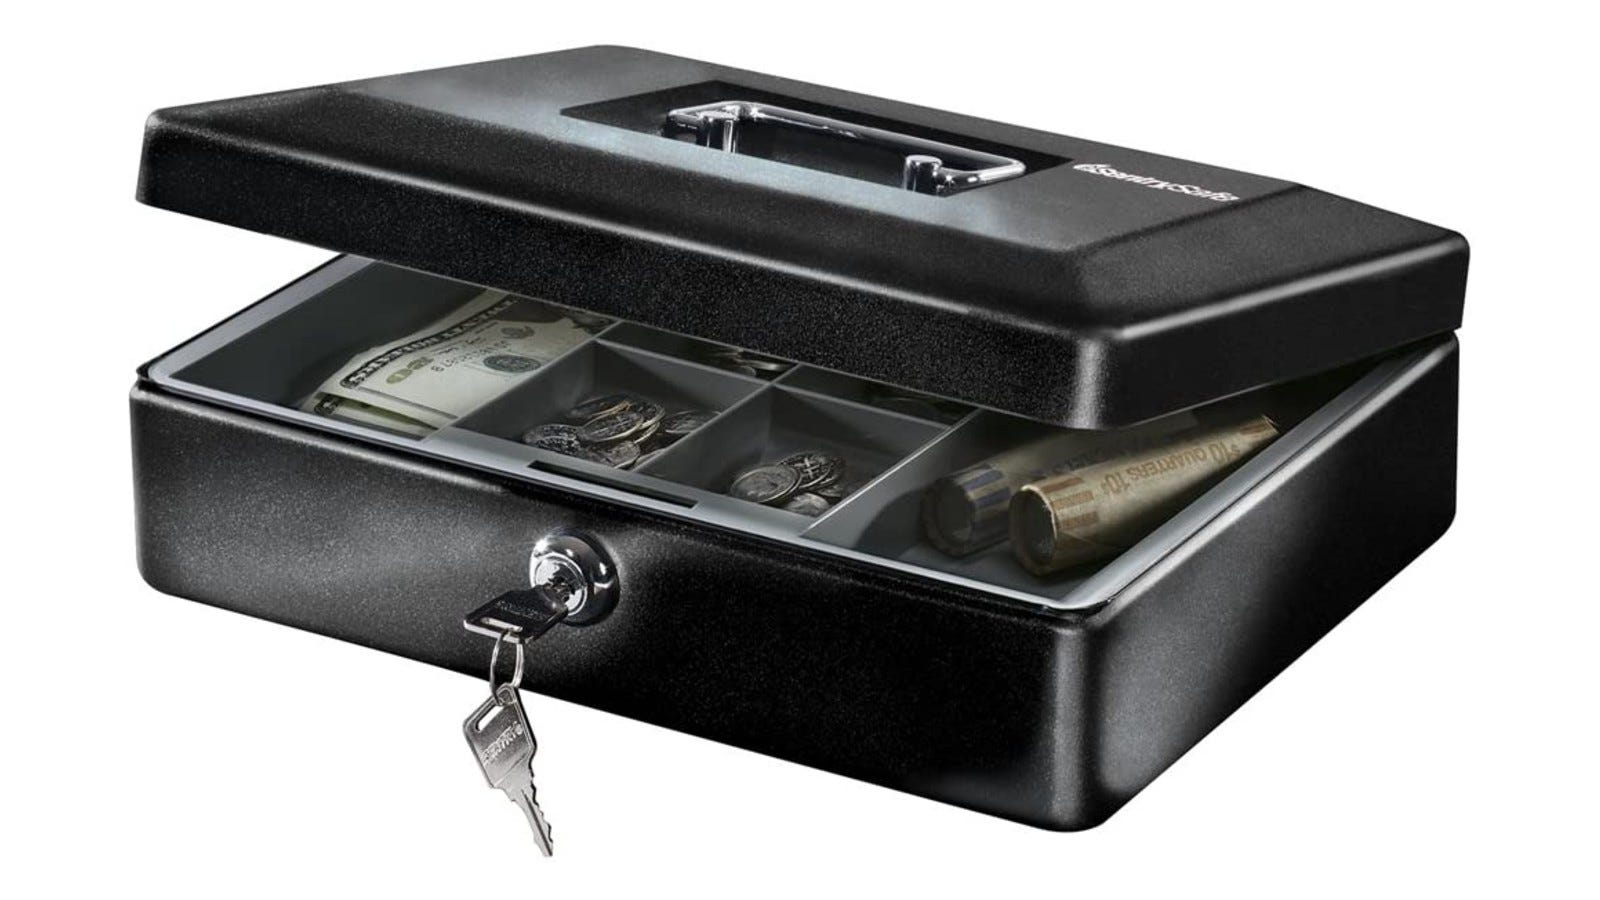 A black open cash box with a removable tray, handle, lock, and compartments with money inside